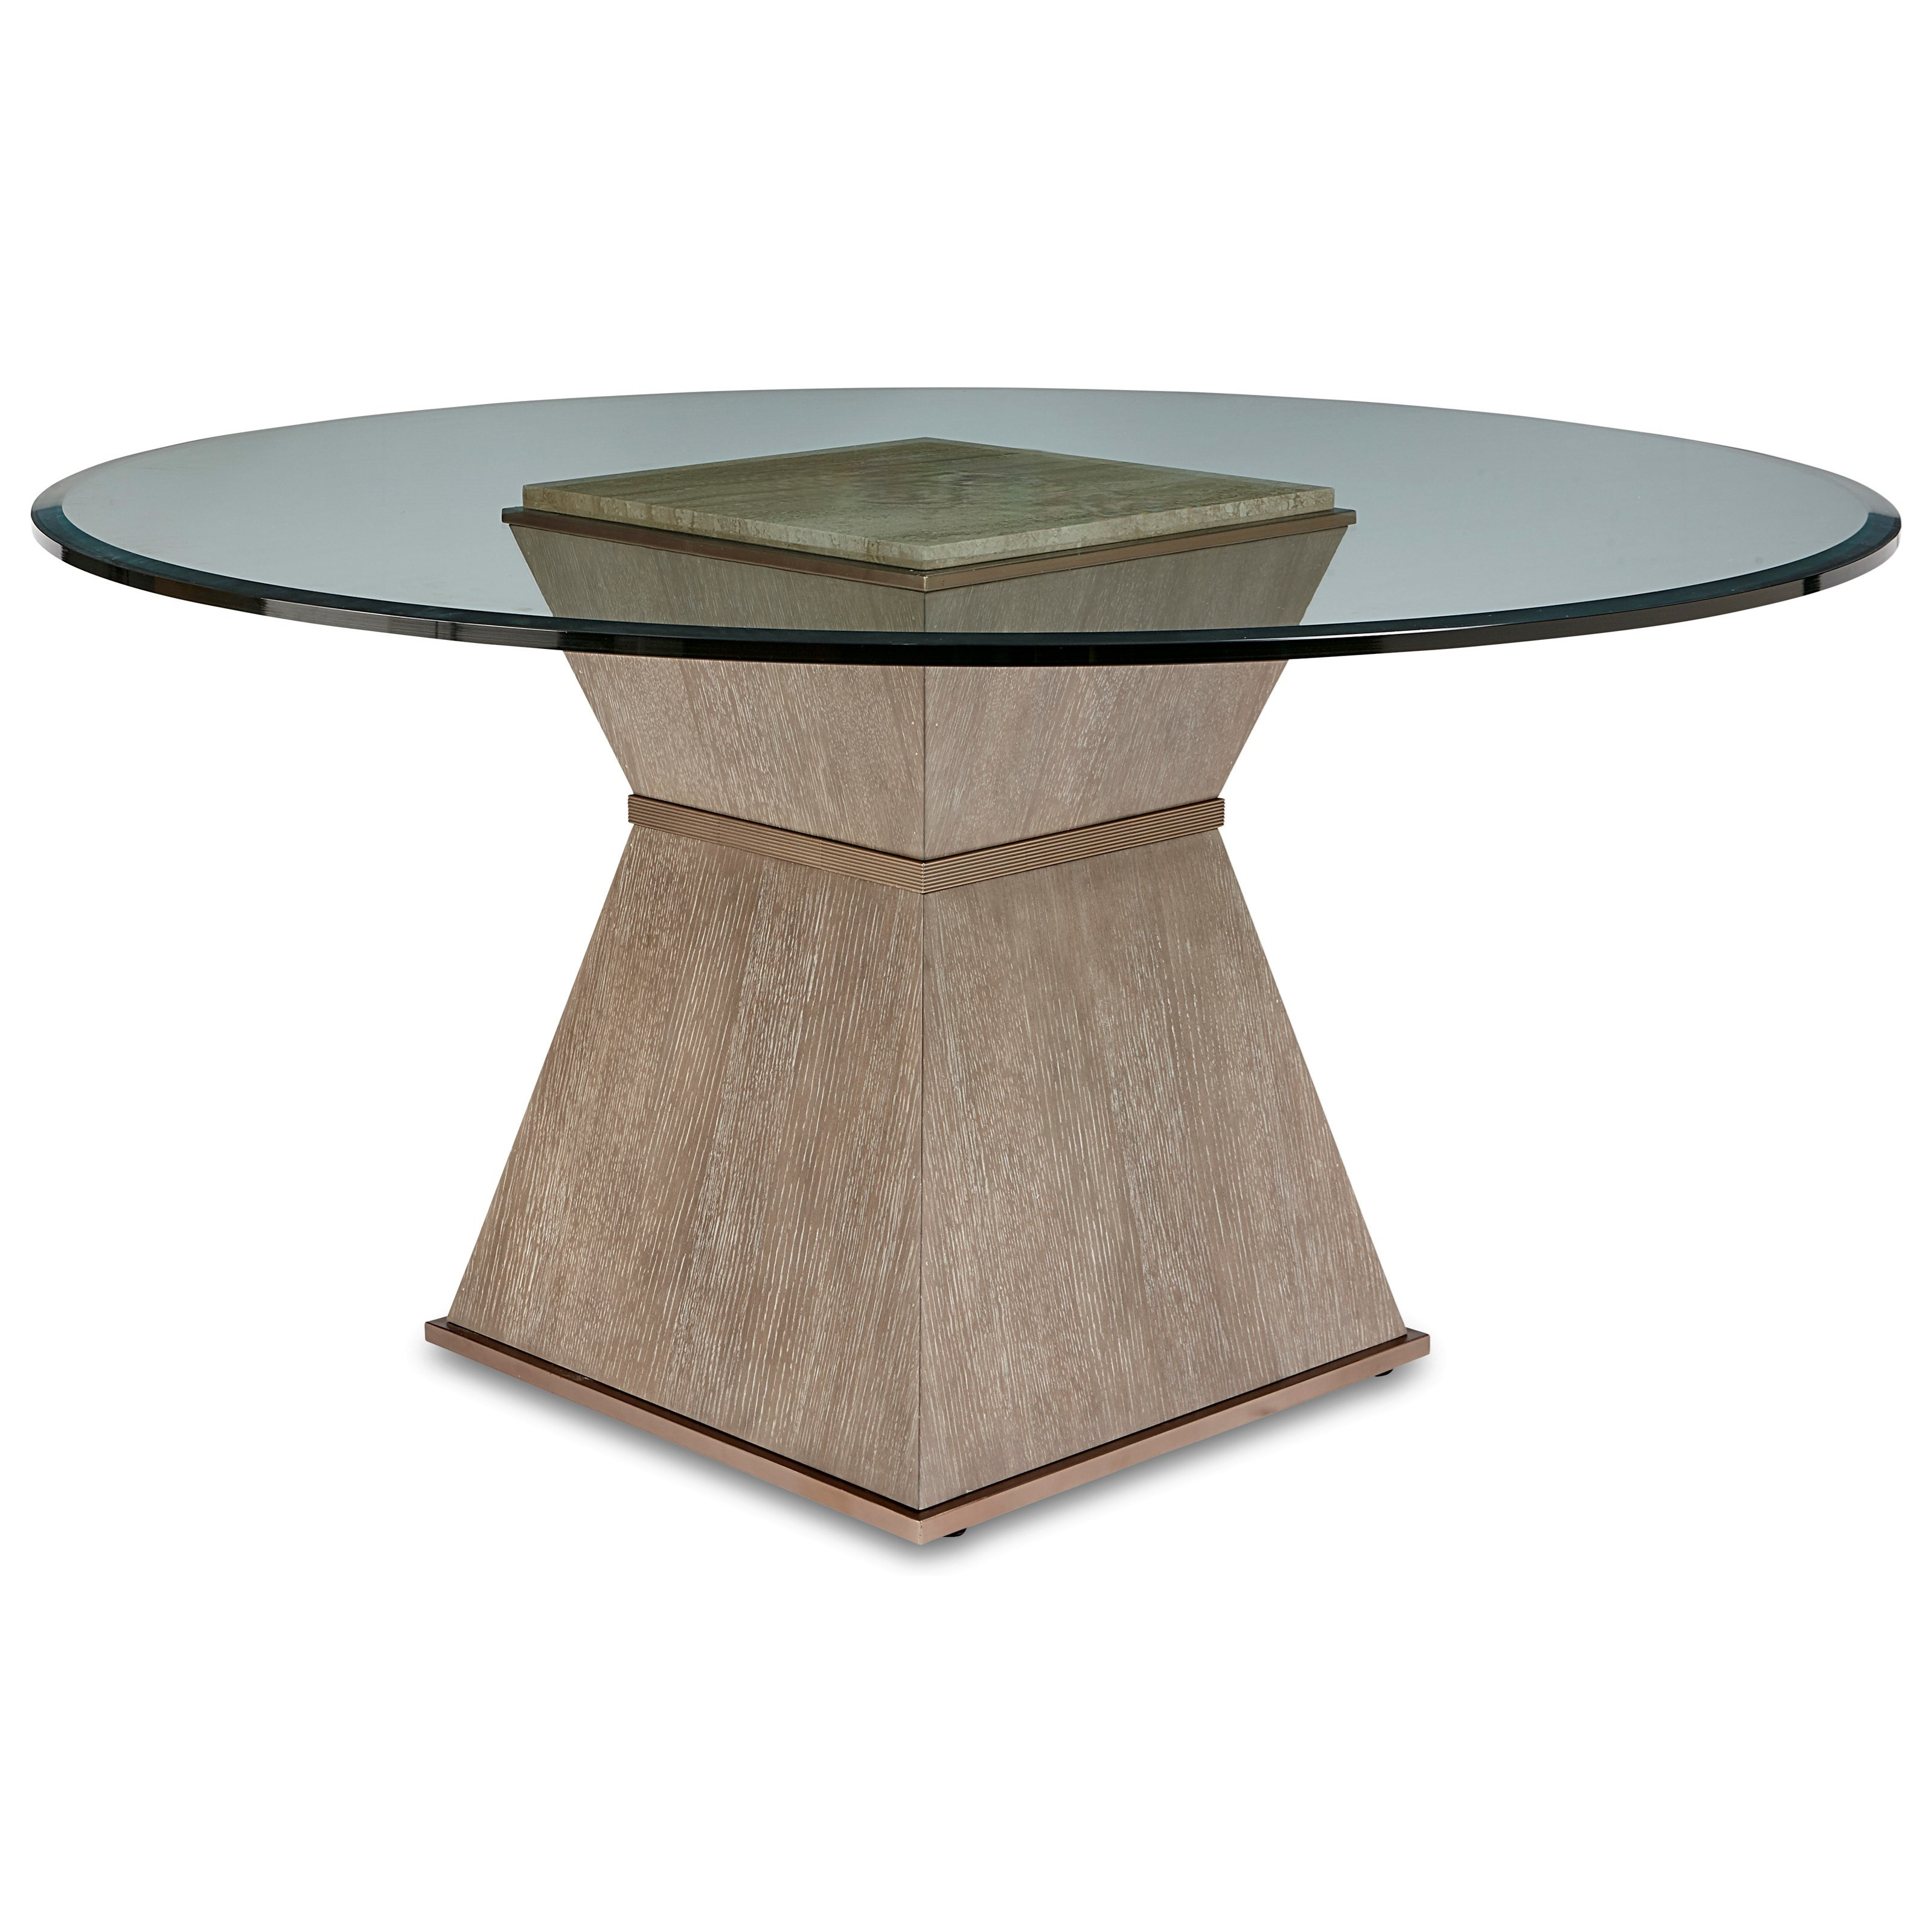 Art Furniture Inc Cityscapes Hancock Dining Table W 60 Round